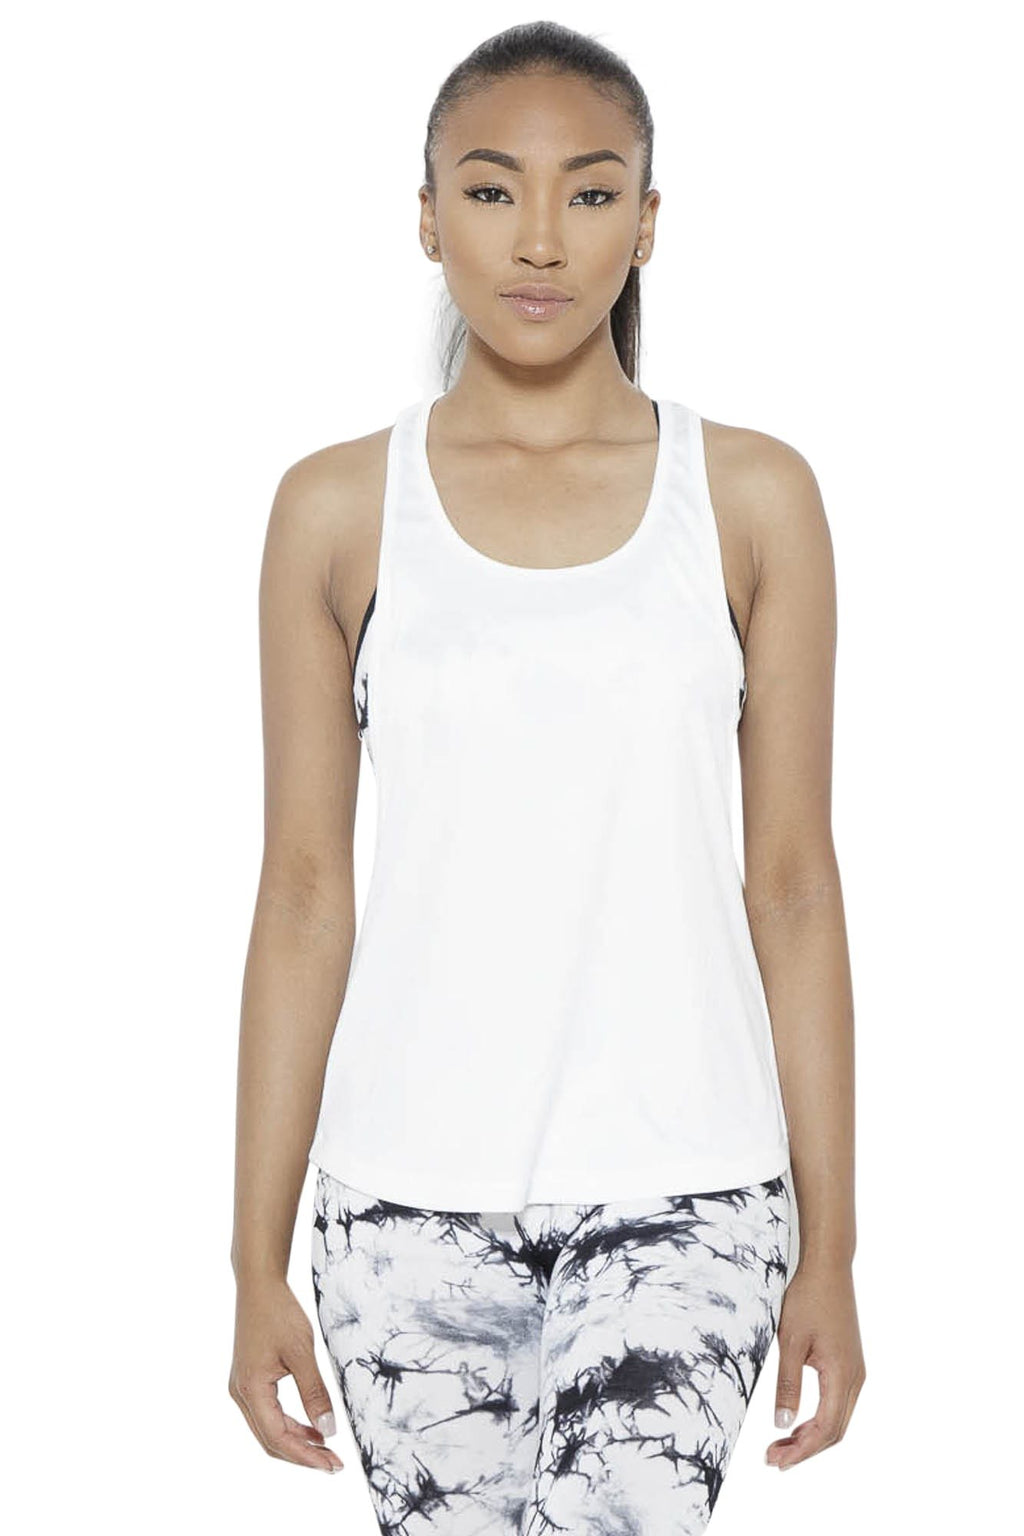 Crater in Arms Tank Top- White Clothing Soffe S White 100% Polyester